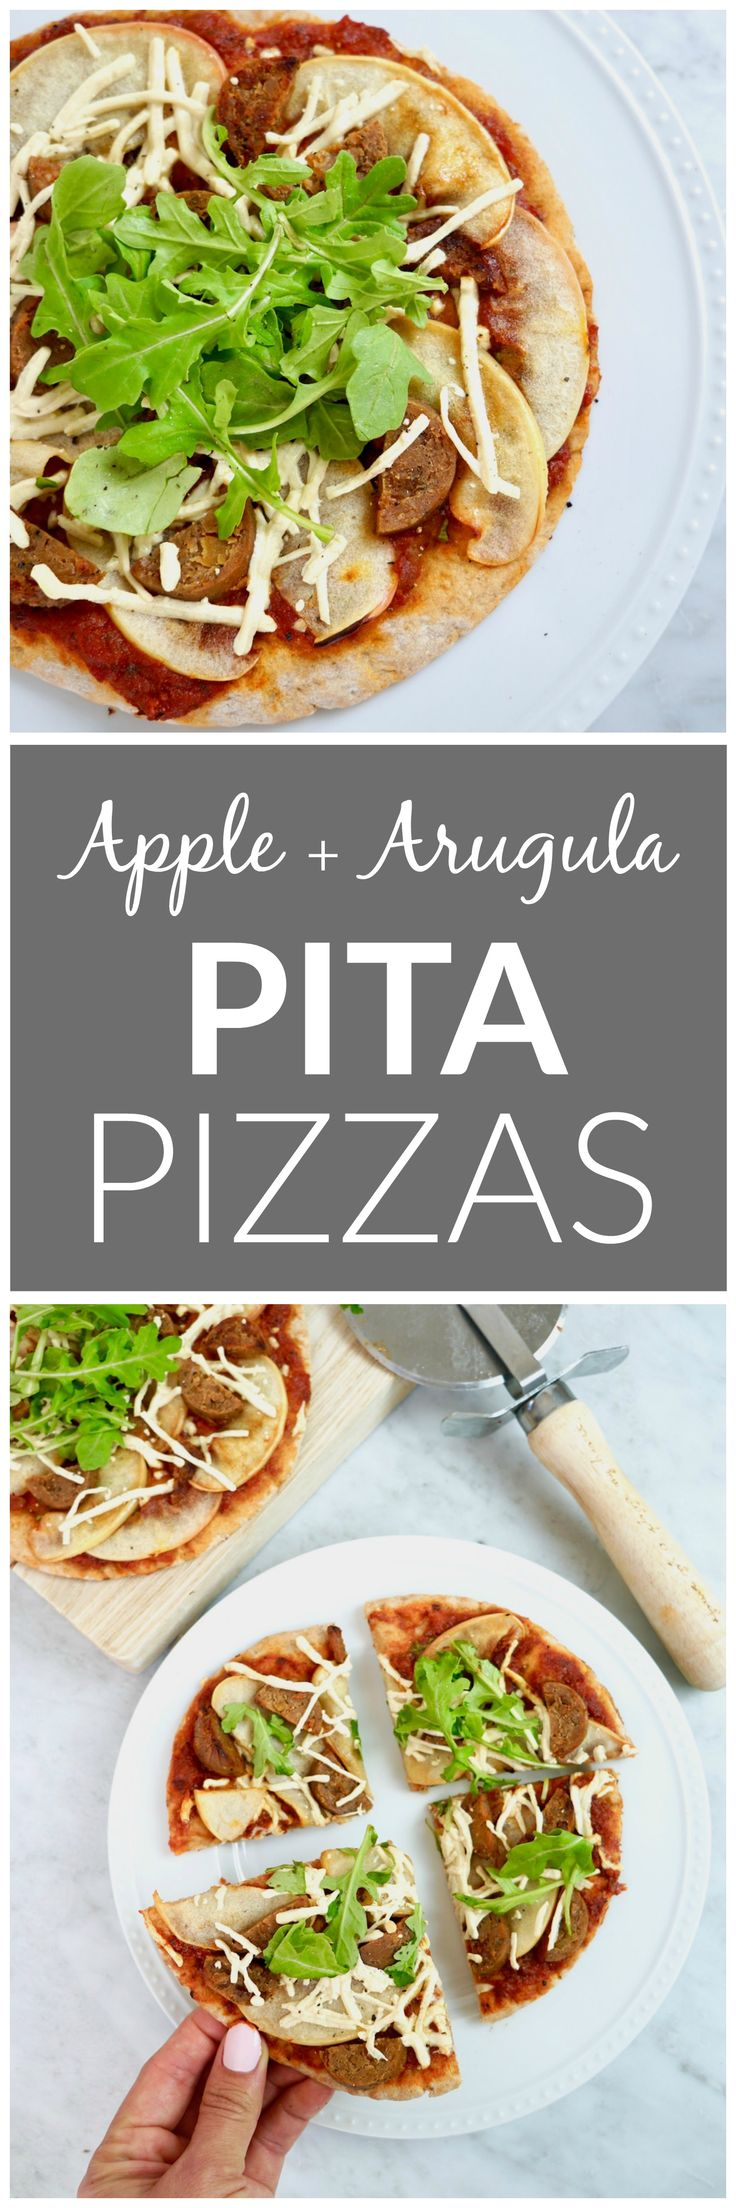 Apple + Arugula Pita Pizzas - vegan, healthy. This quick and easy dinner recipes features fall flavors including sautéed apples and vegan apple sausage. This plant-based pita pizza is the perfect dinner for busy nights!